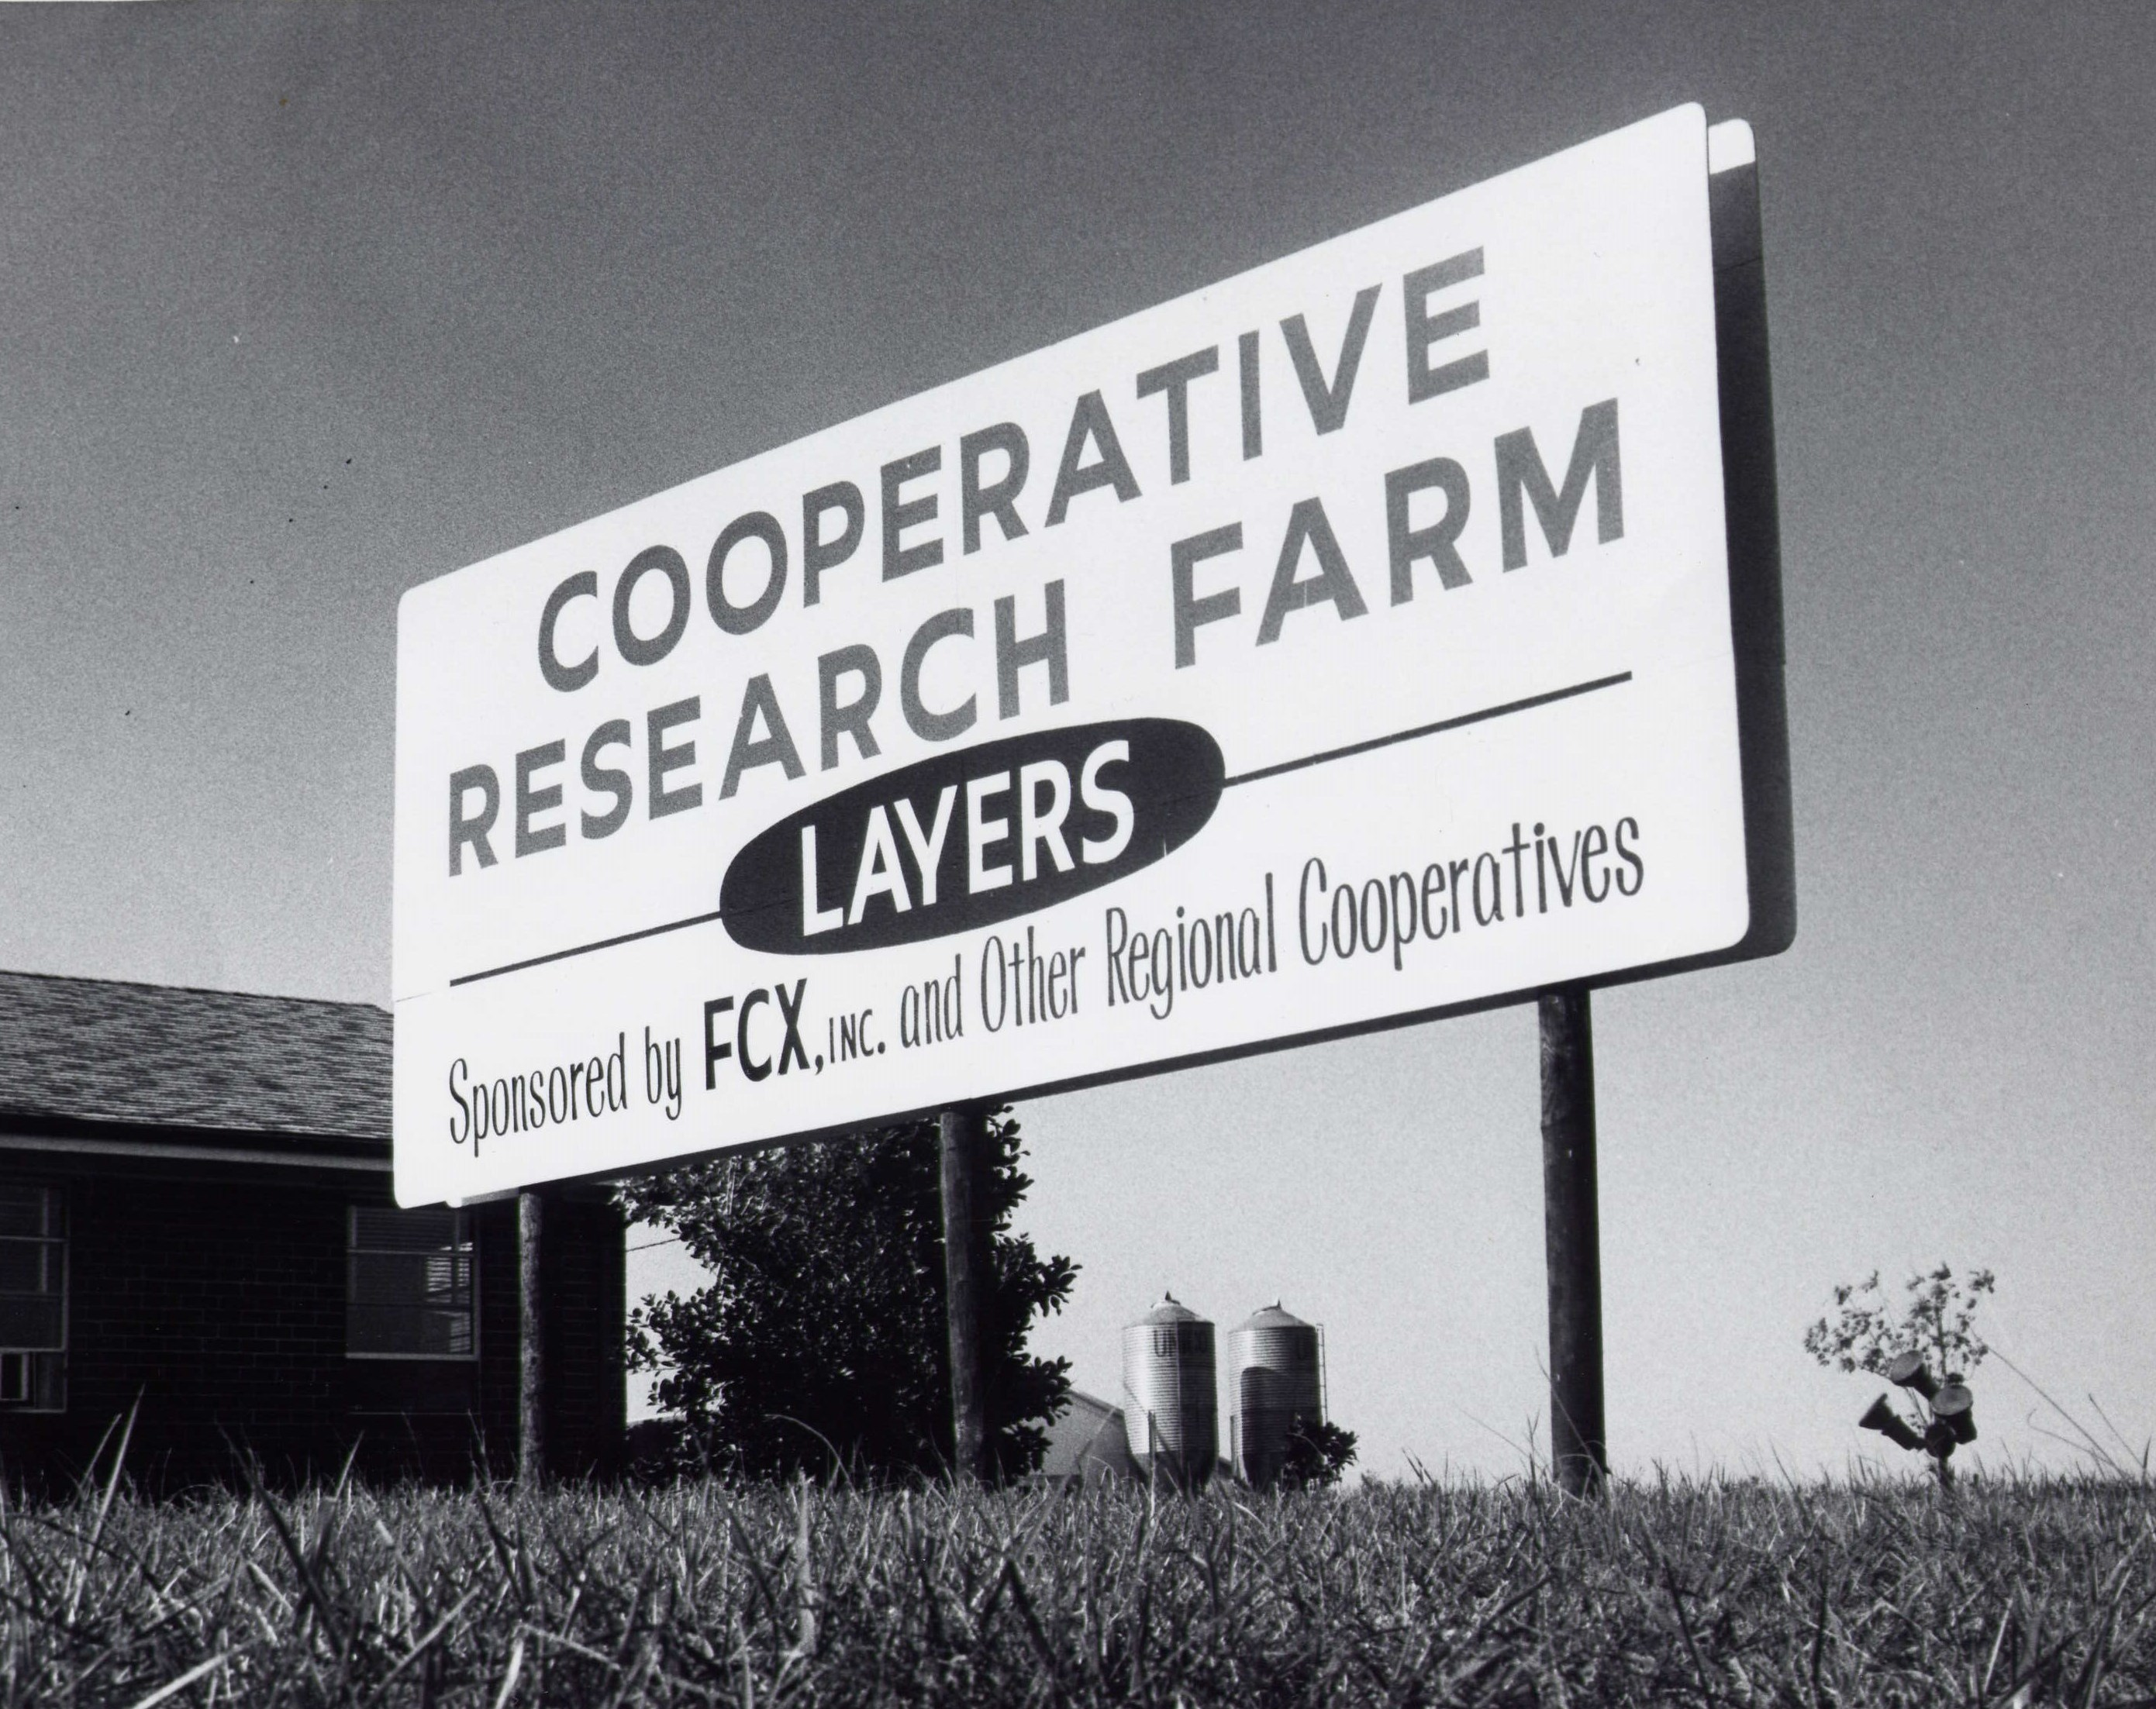 CRF Layer Resaerch in Garner, North Carolina - 1960's and 70's